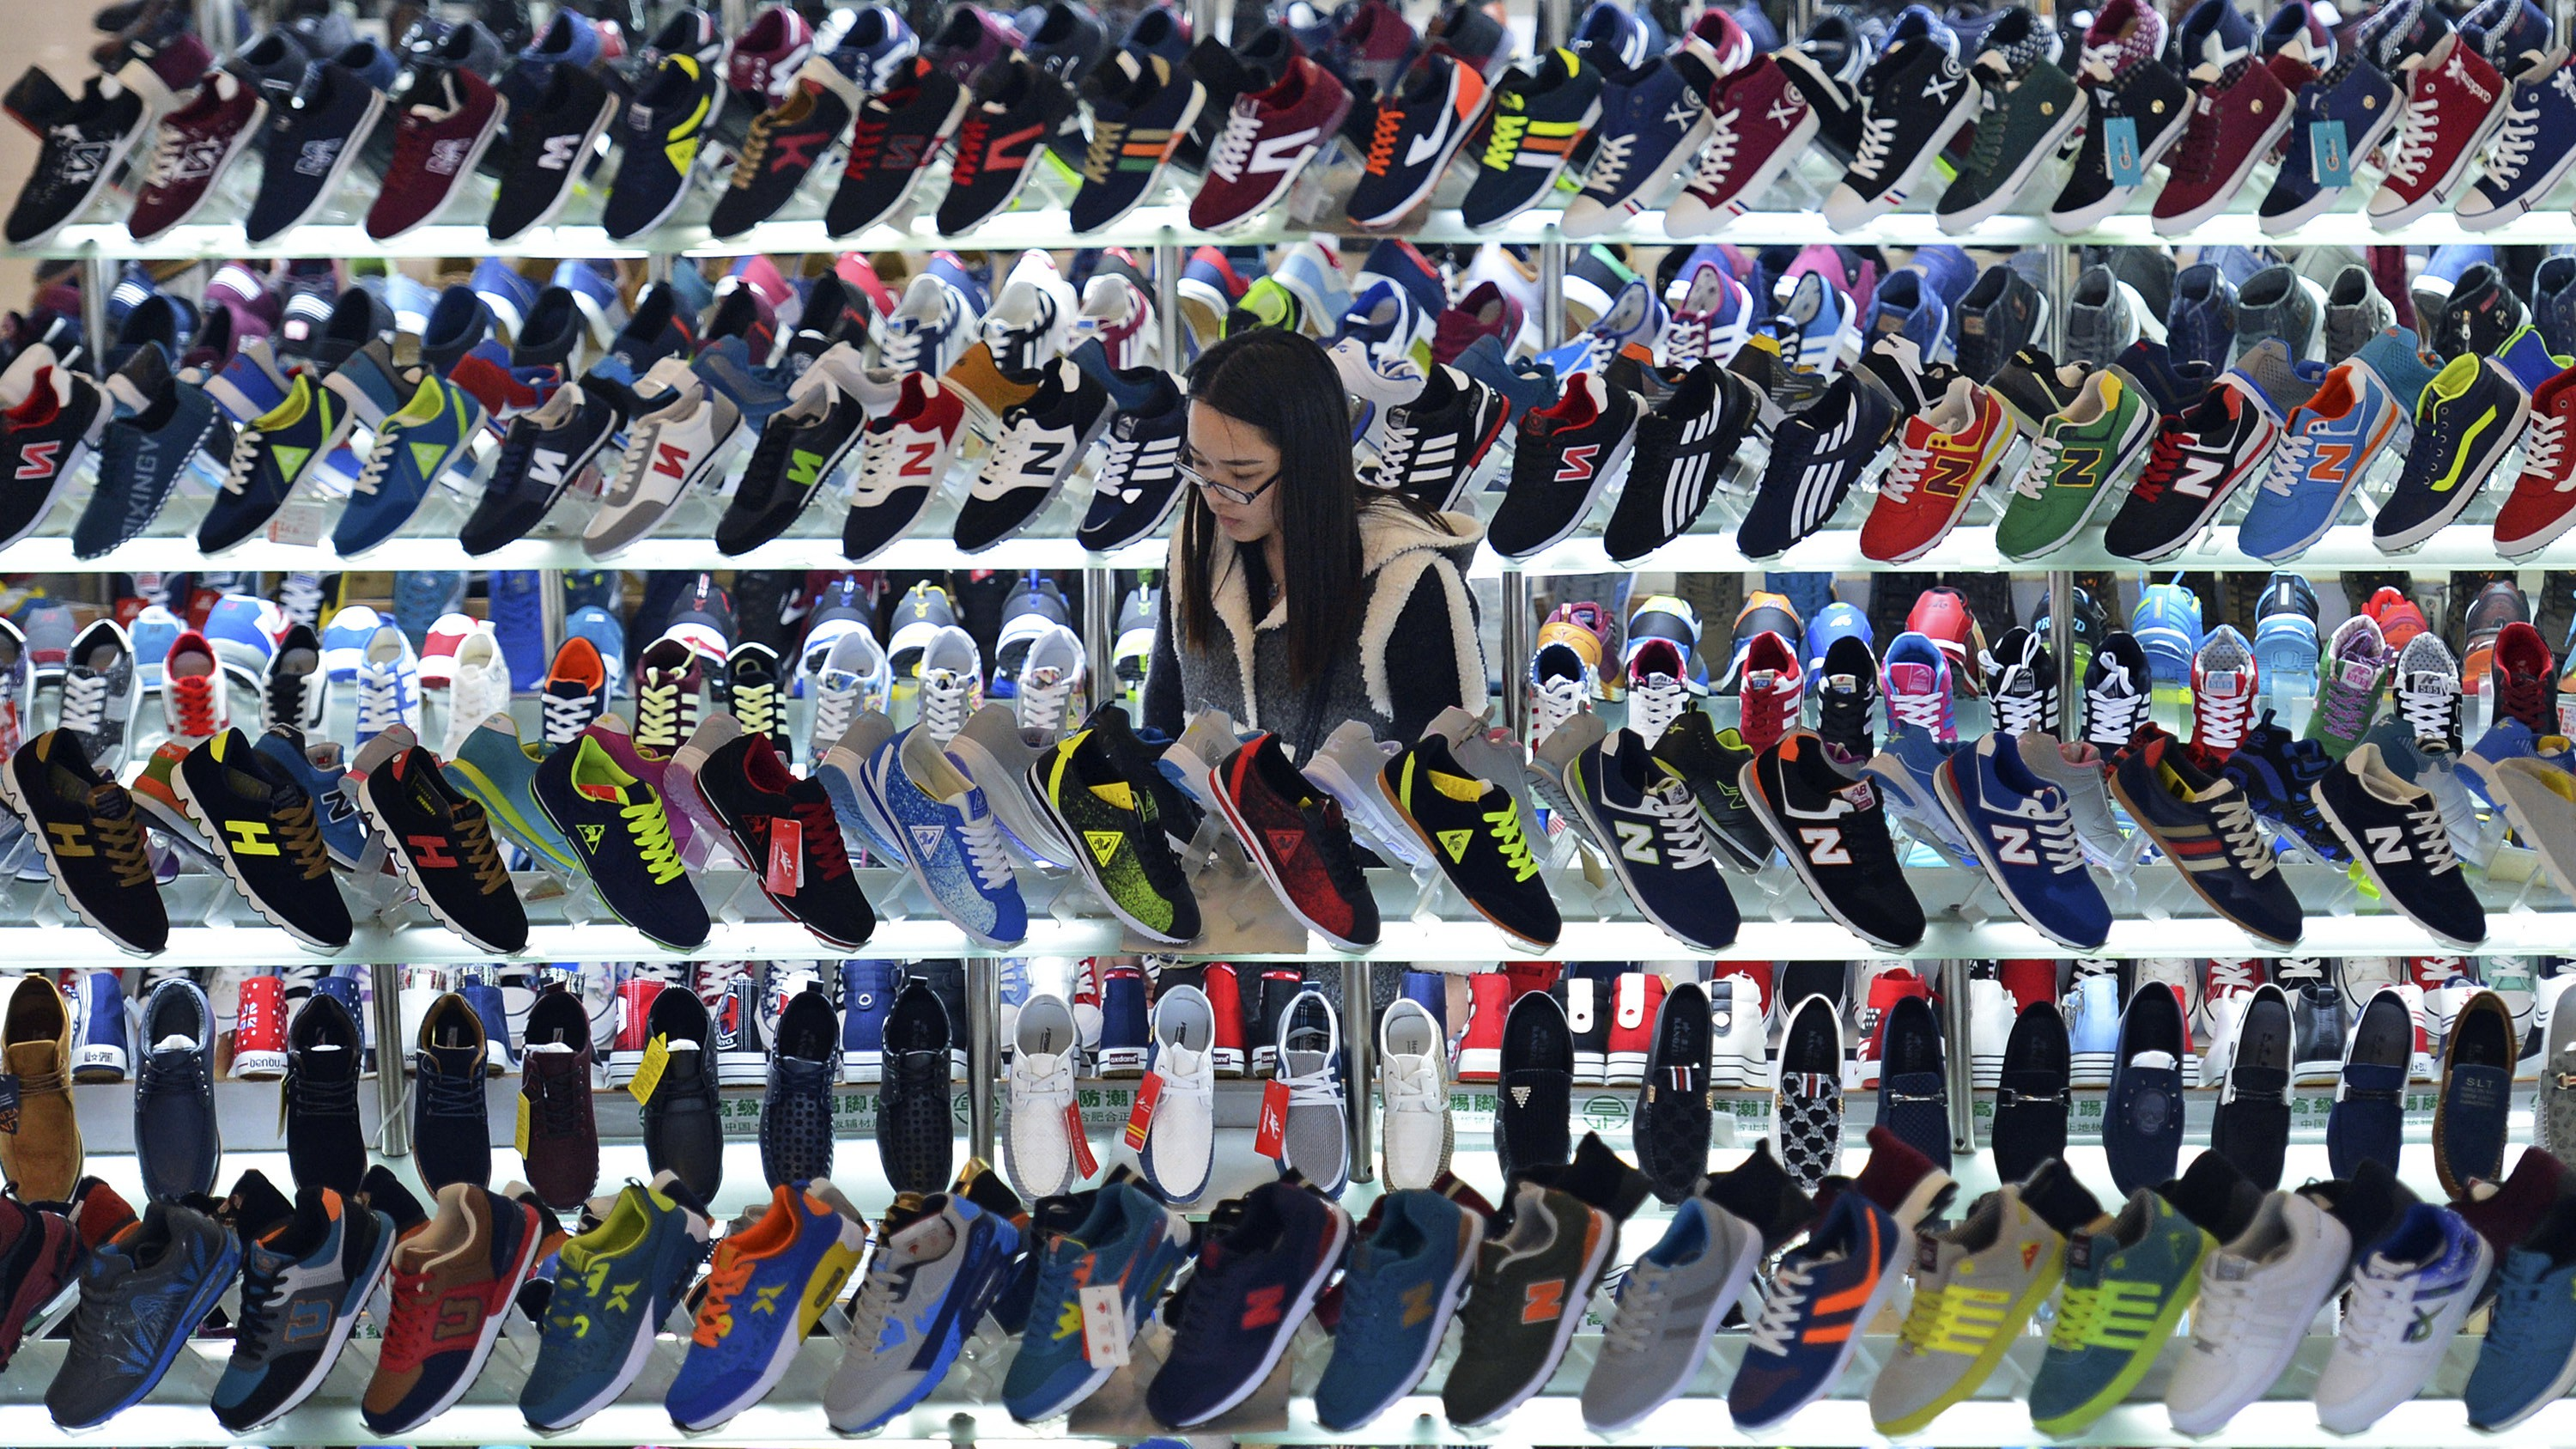 A customer shops for shoes at a mall in Hefei, Anhui province, March 10, 2015. China's annual consumer inflation recovered in February, exceeding expectations, but producer prices continued to slide, underscoring deepening weakness in the economy and intensifying pressure on policymakers to find new ways to support growth.